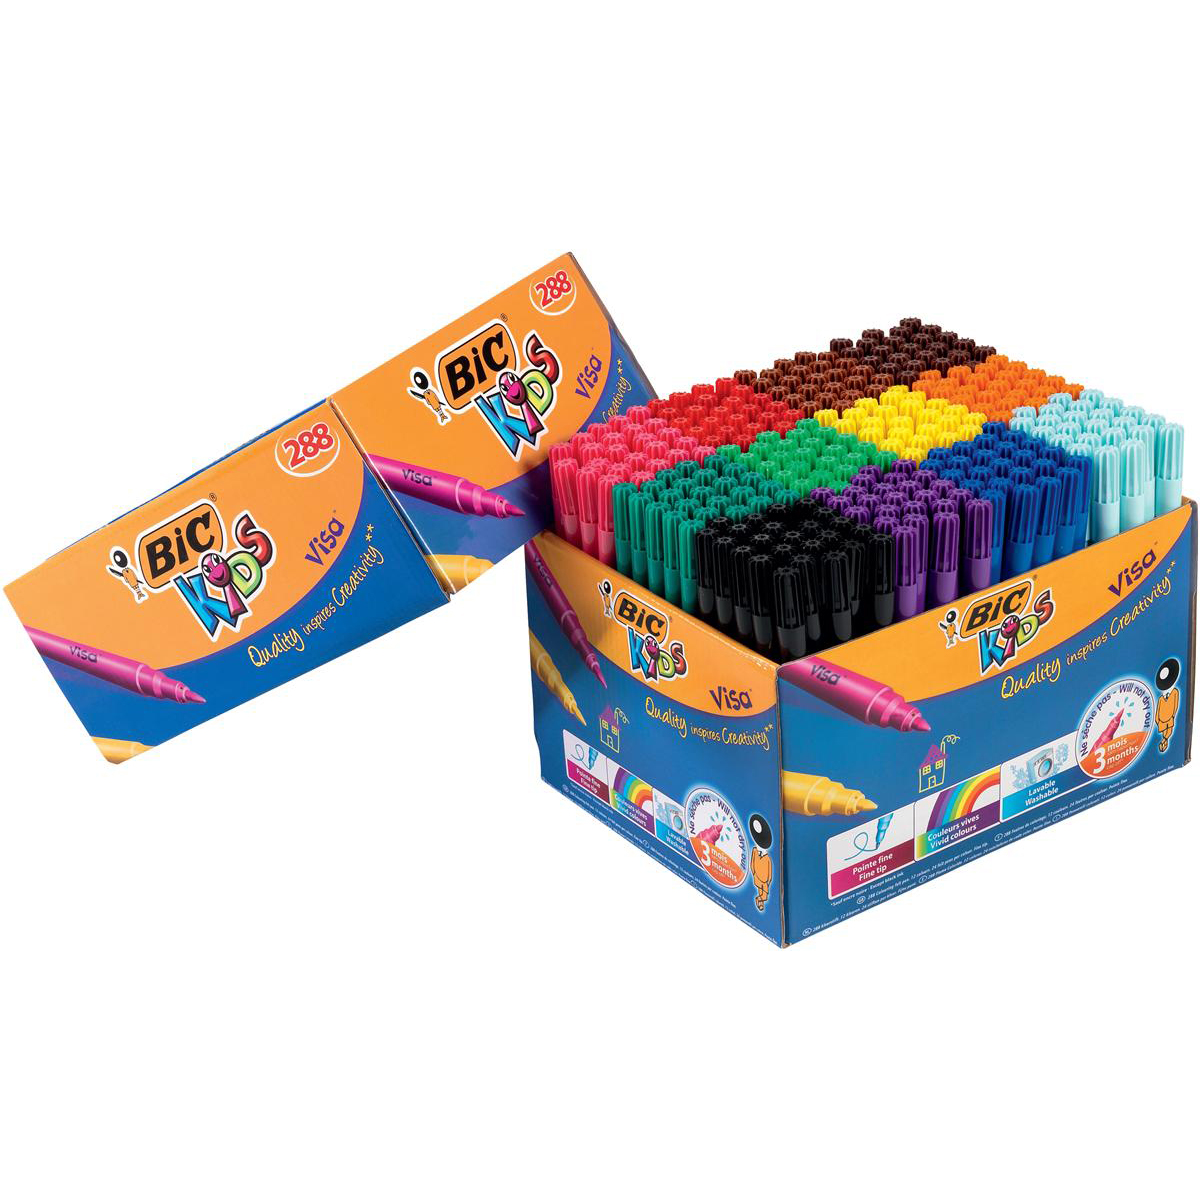 Colouring Pens Bic Kids Visa Felt Tip Pens Washable Fine Tip Class Pack Assorted Ref 897099 Pack 288